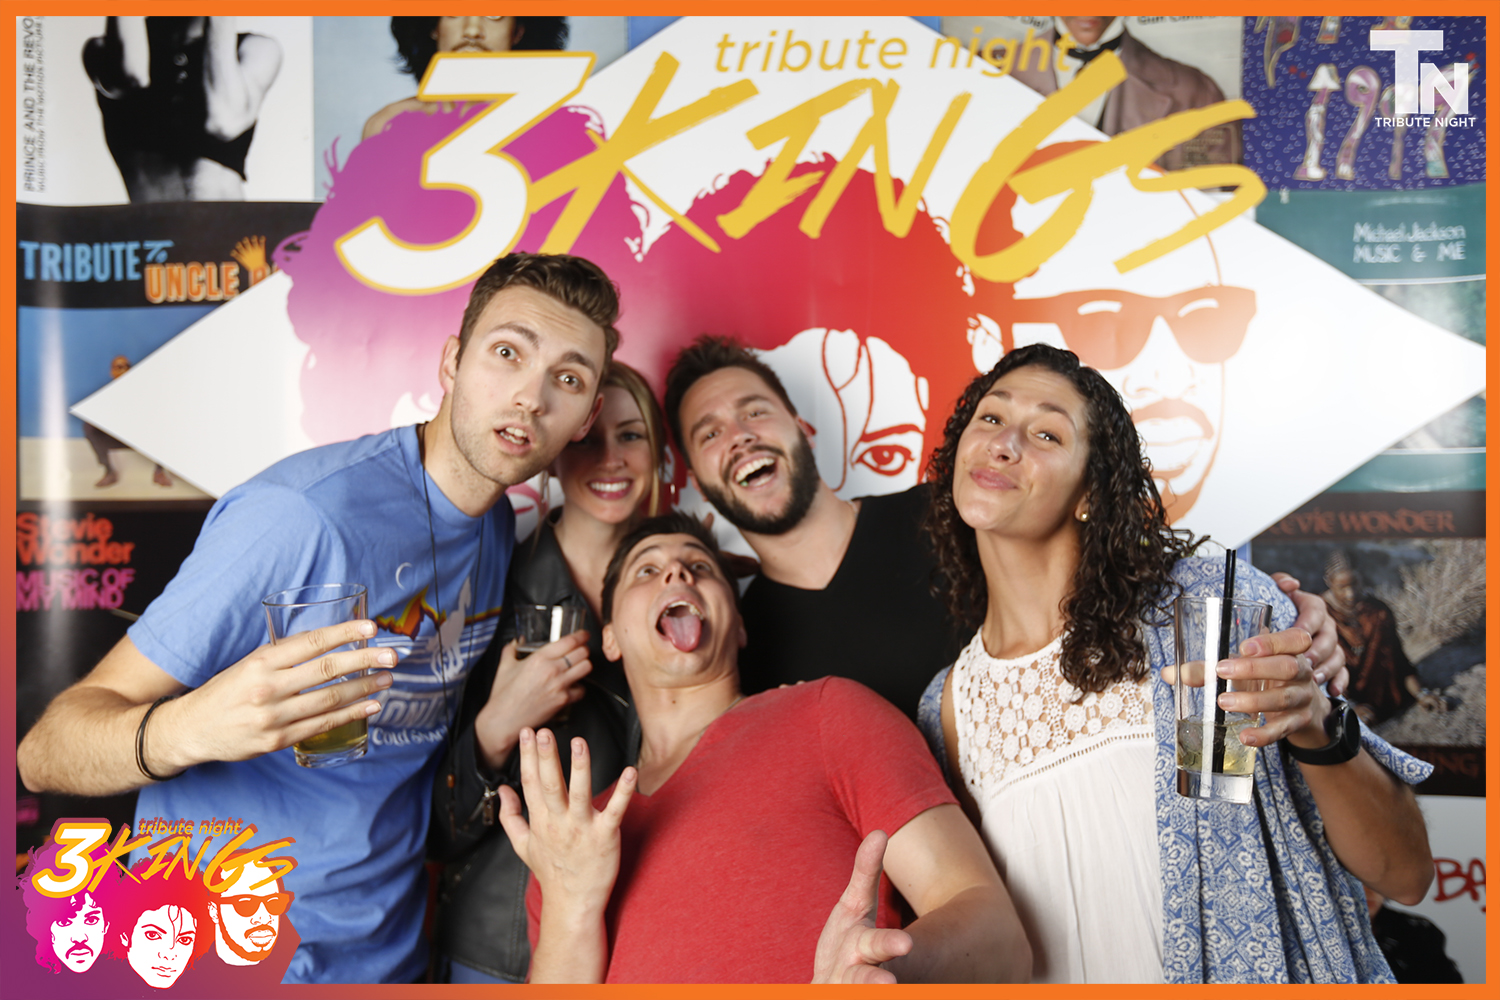 3kings Tribute Night Logo193.jpg